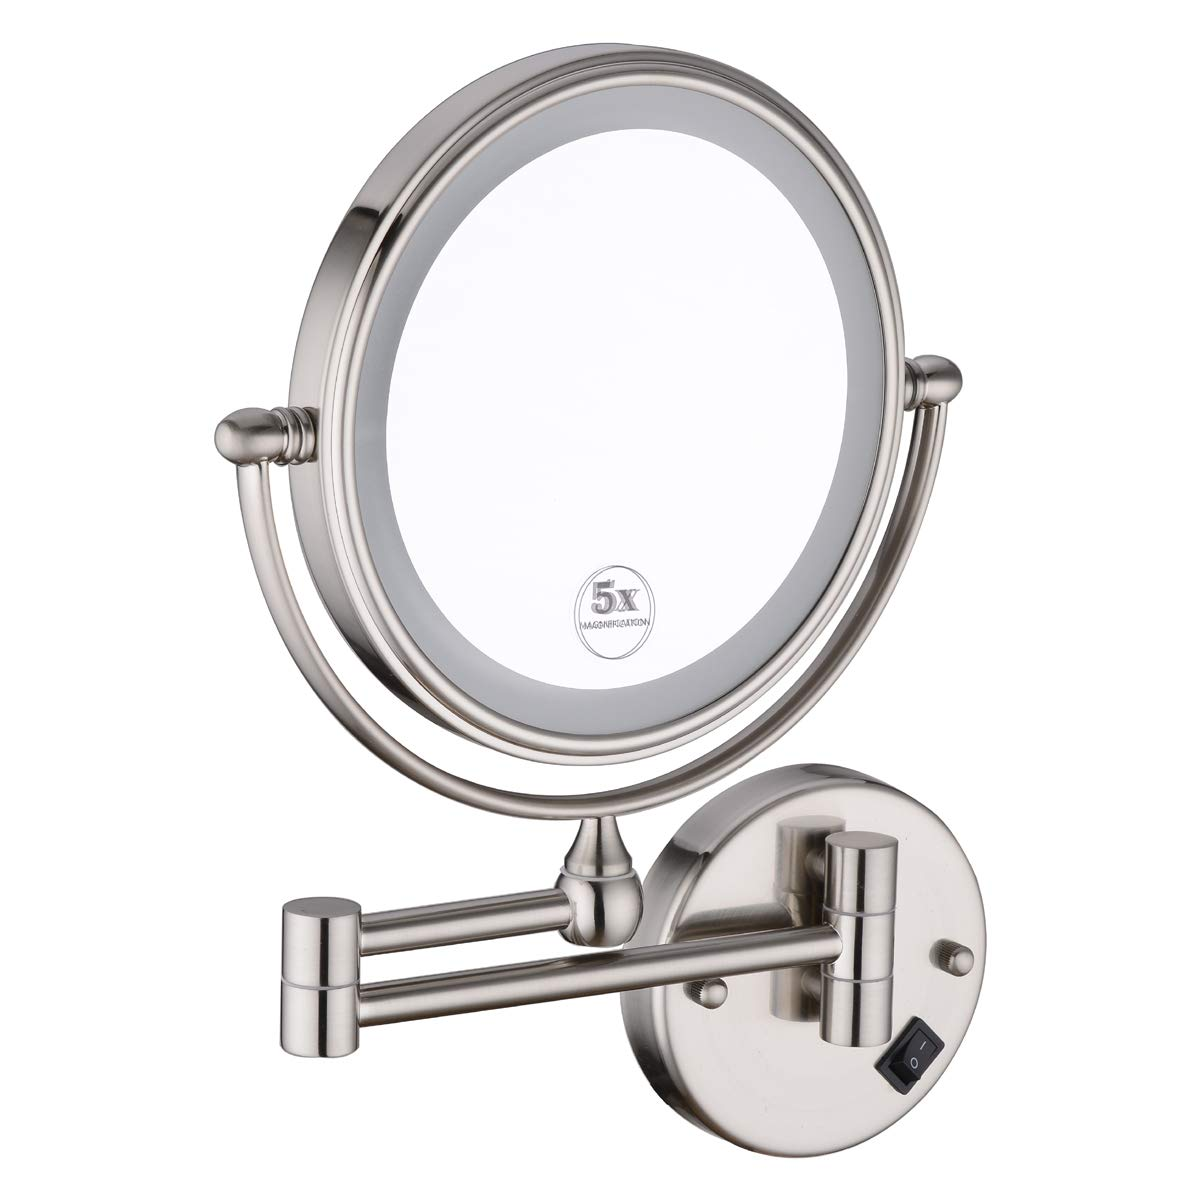 Anpean 8 Inch LED Lighted Hardwired Wall Mount Makeup Mirror with 5x Magnification, Brushed Nickel